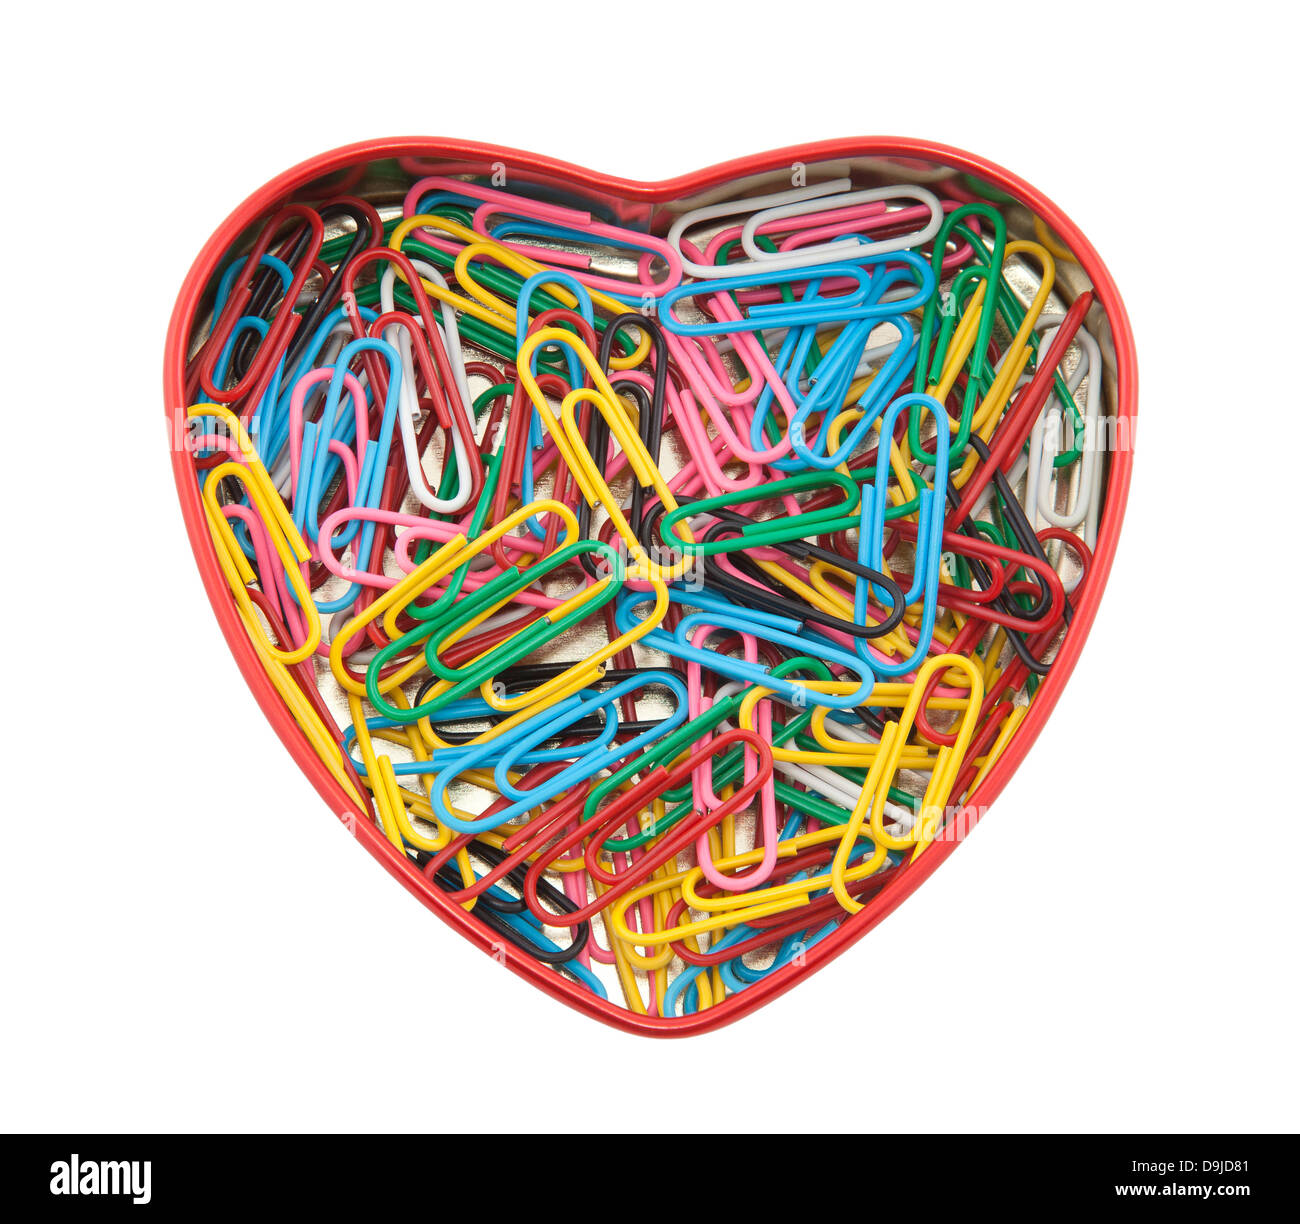 Coeur en trombones with clipping path Photo Stock